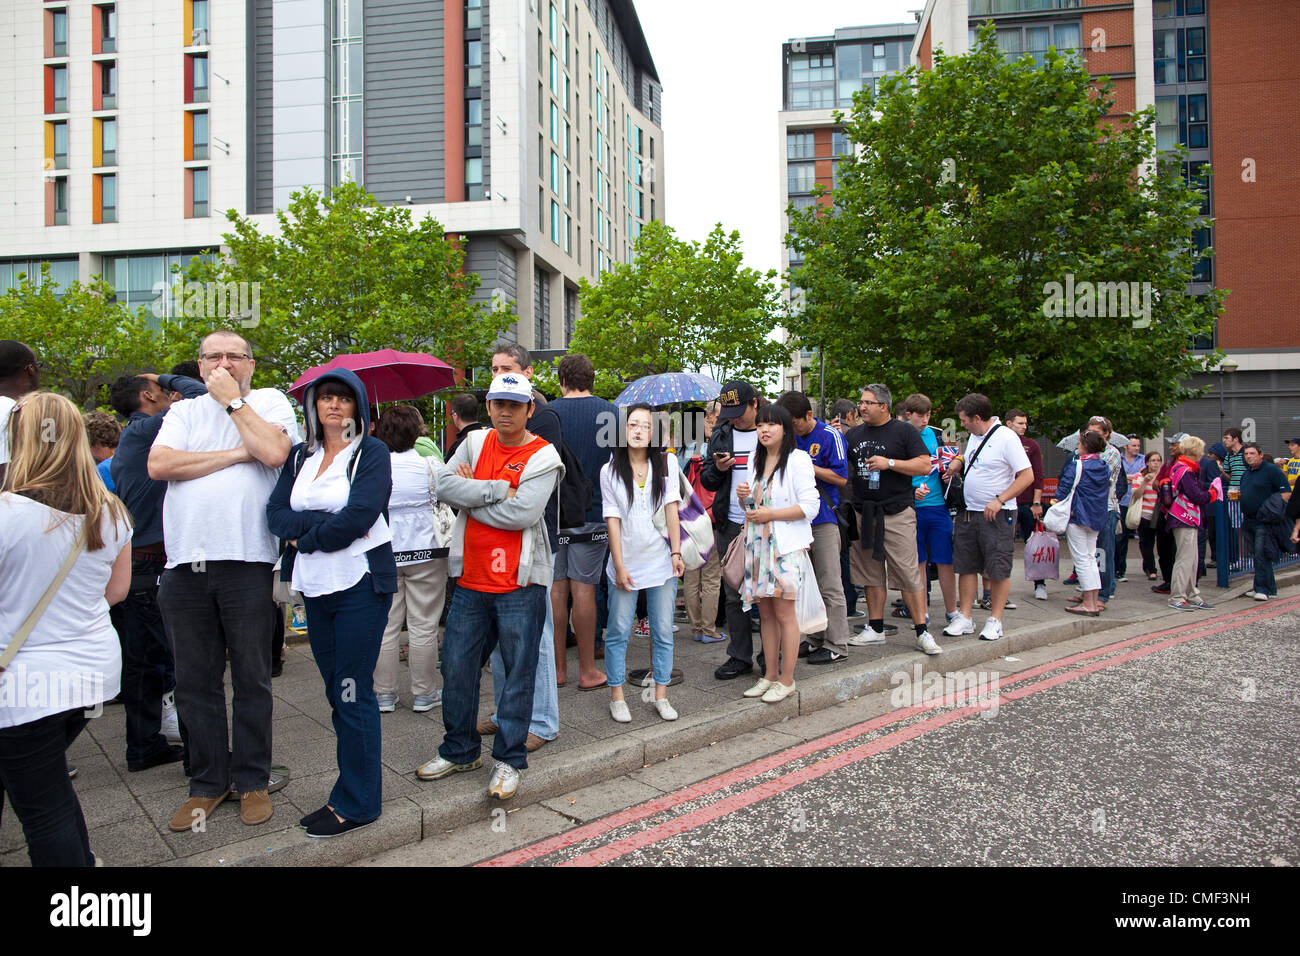 London, UK. Wednesday 1st August 2012. Queues of London Olympic Games 2012 spectators at ExCel Ticket Box Office Stock Photo